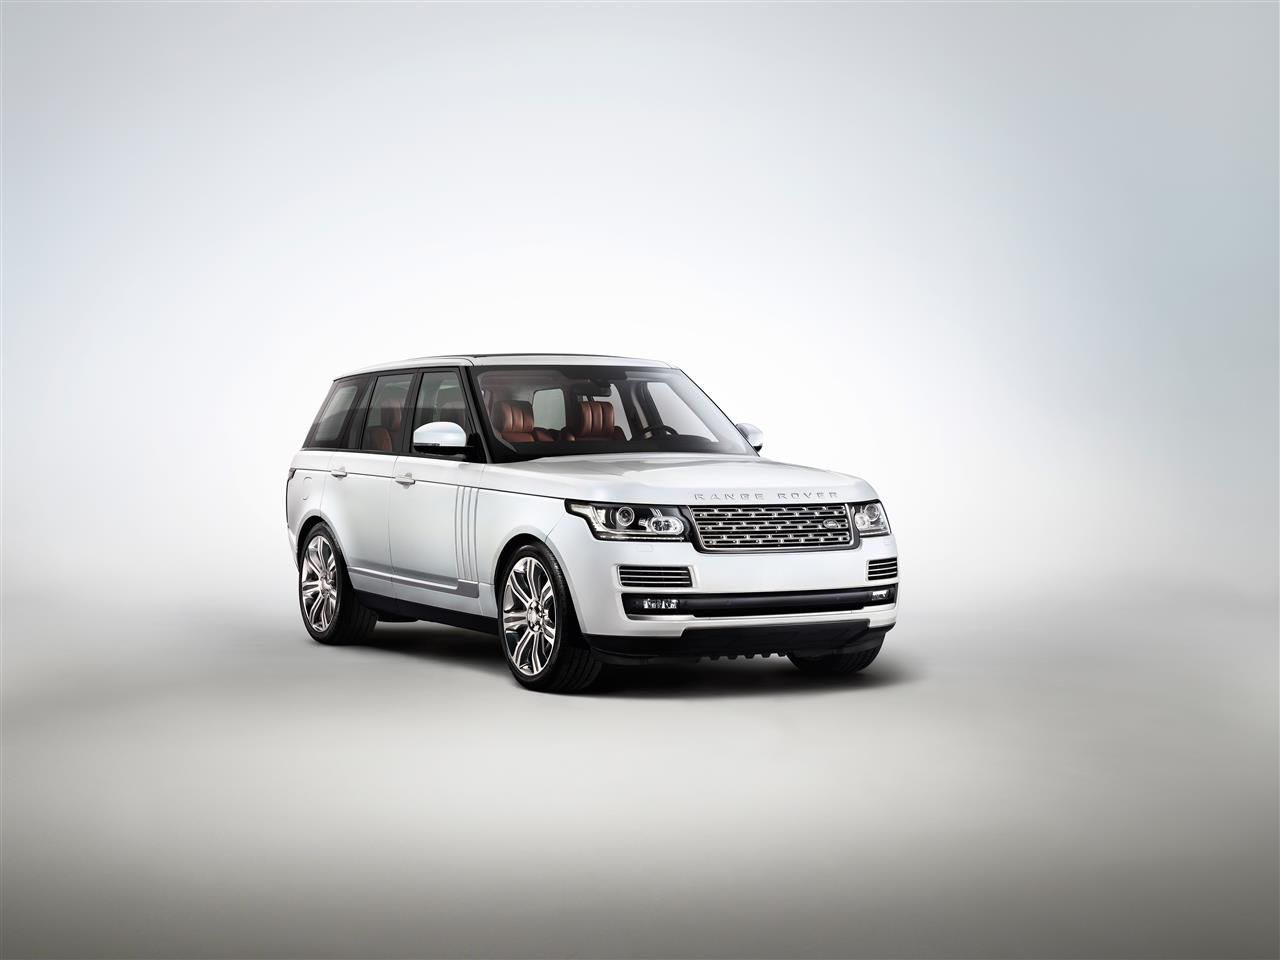 2019 Land Rover Range Rover Autobiography photo - 2